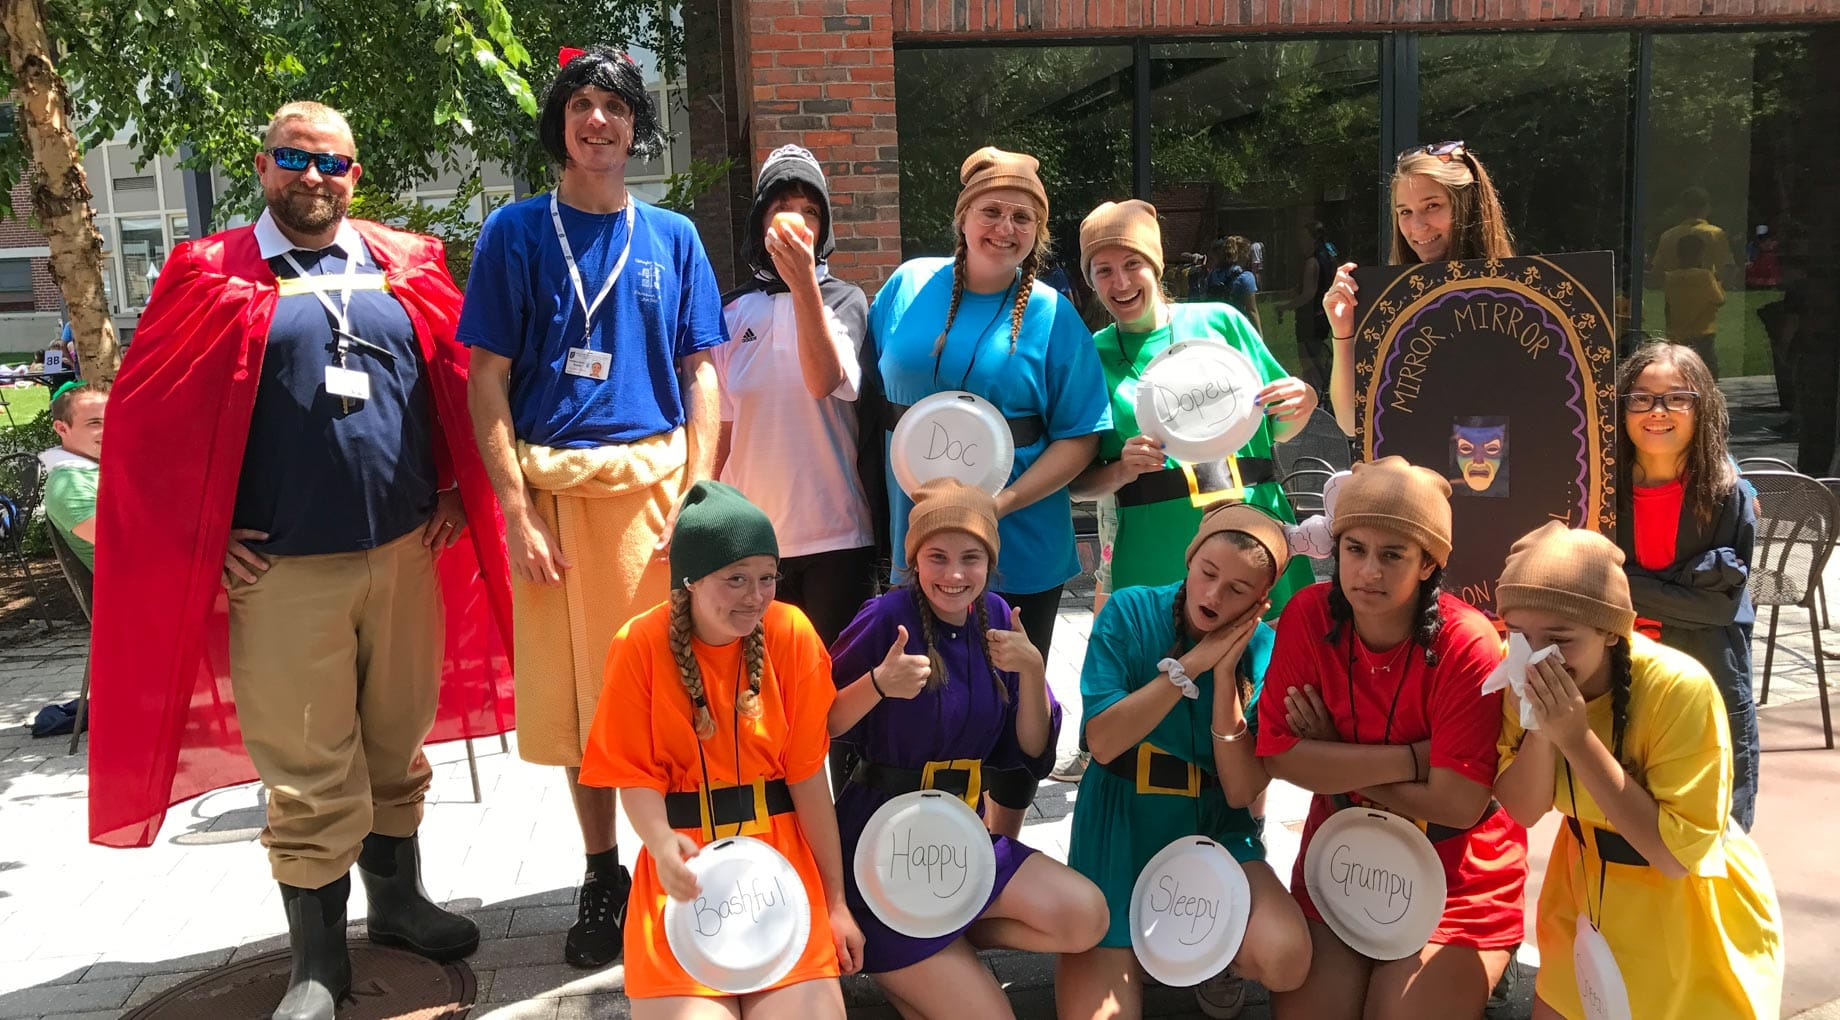 Campers and staff wearing Snow White costumes